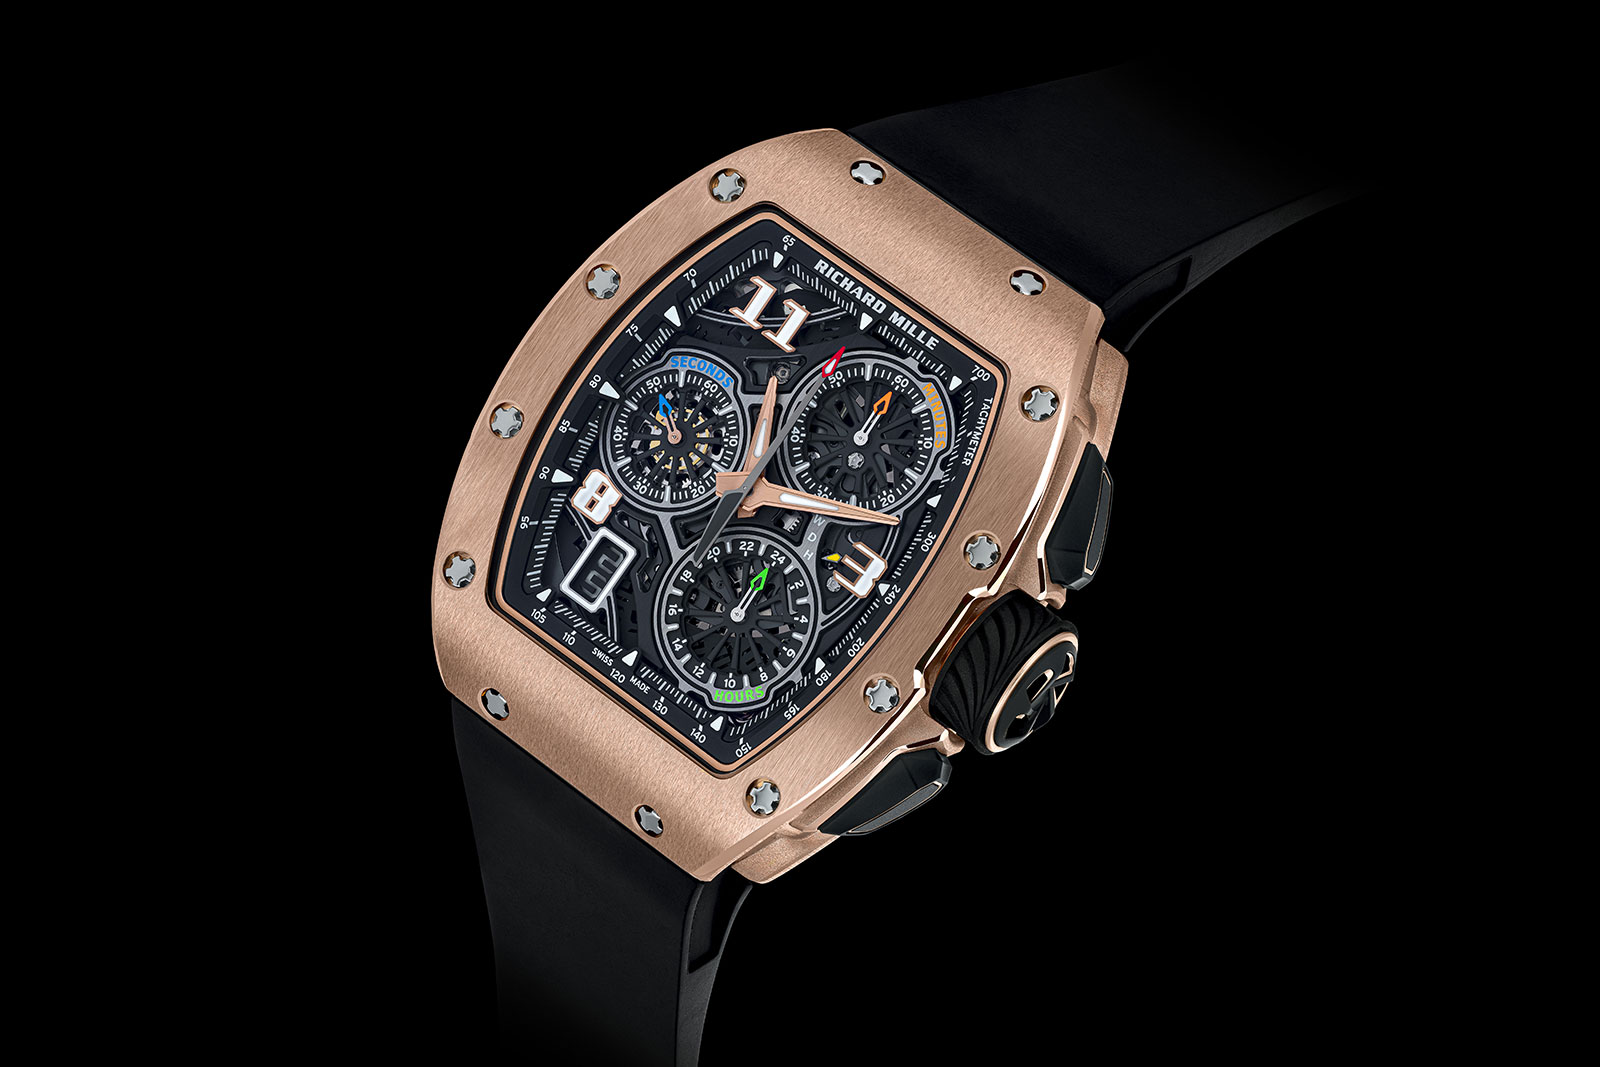 Giới thiệu chiếc đồng hồ RM72-01 Lifestyle In-House Chronograph